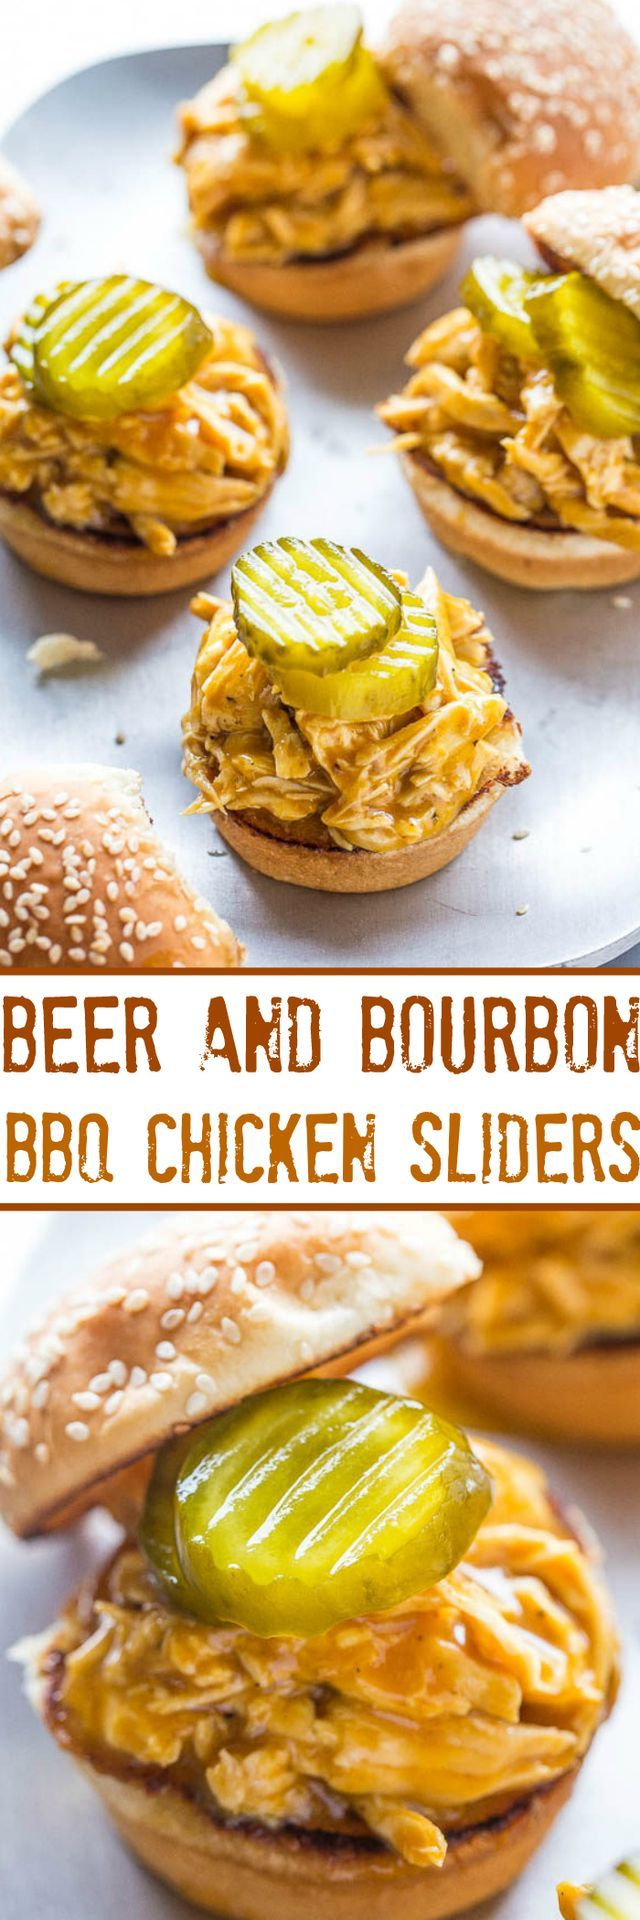 Beer and Bourbon Barbecue Chicken Sliders   Averie Cooks